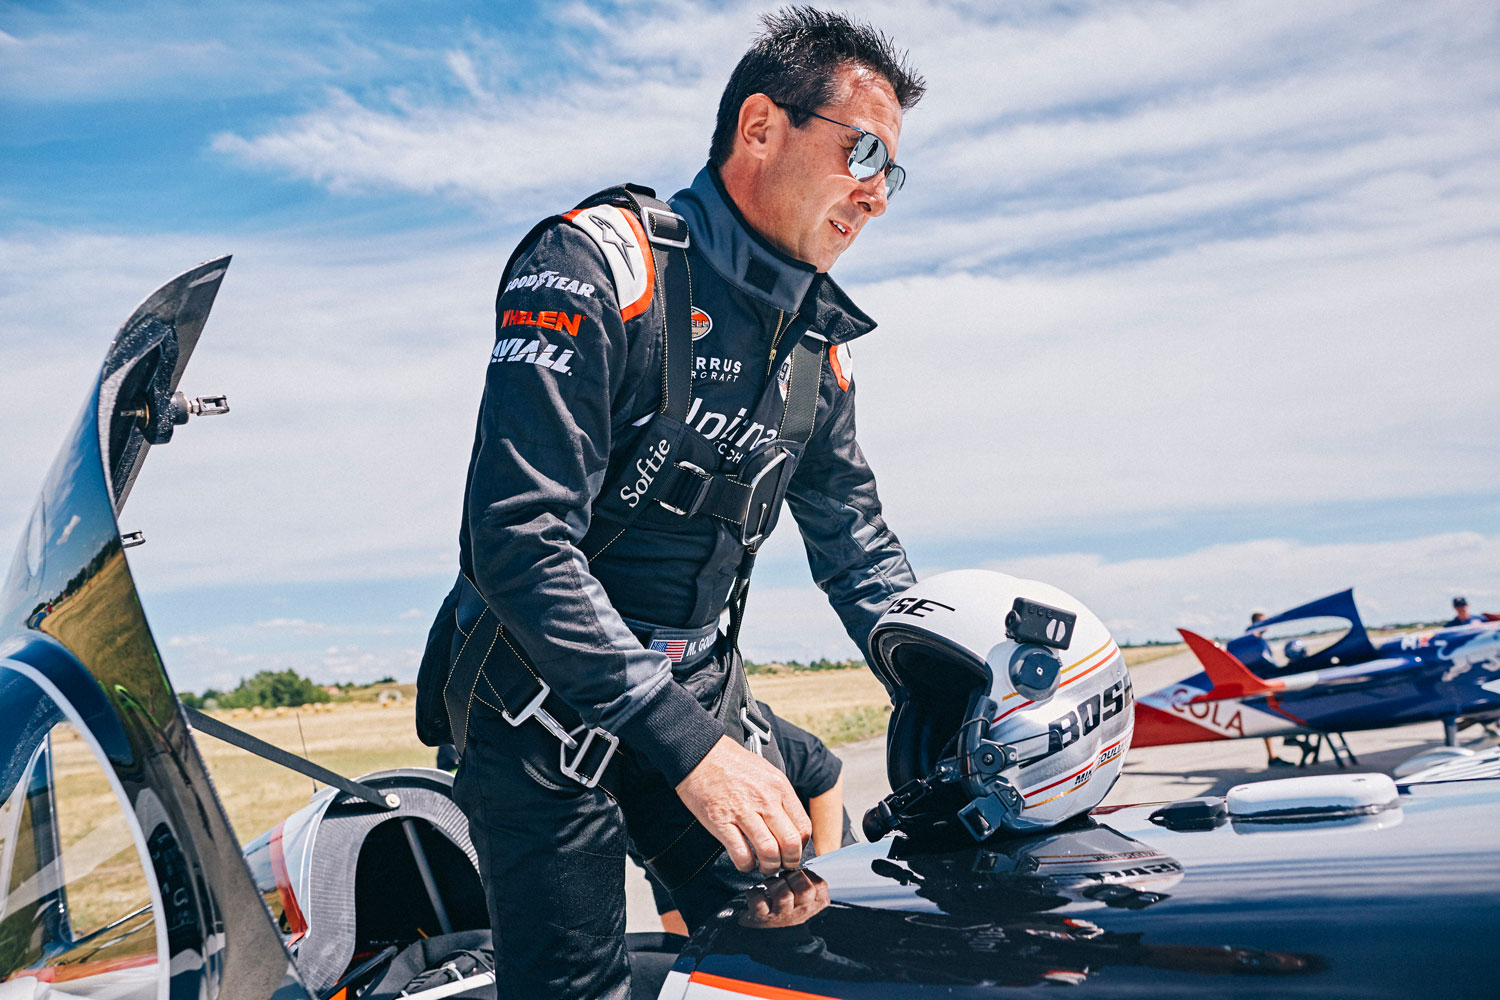 Michael Goulian to Make Russian Debut Alongside Team Partner Alpina 3